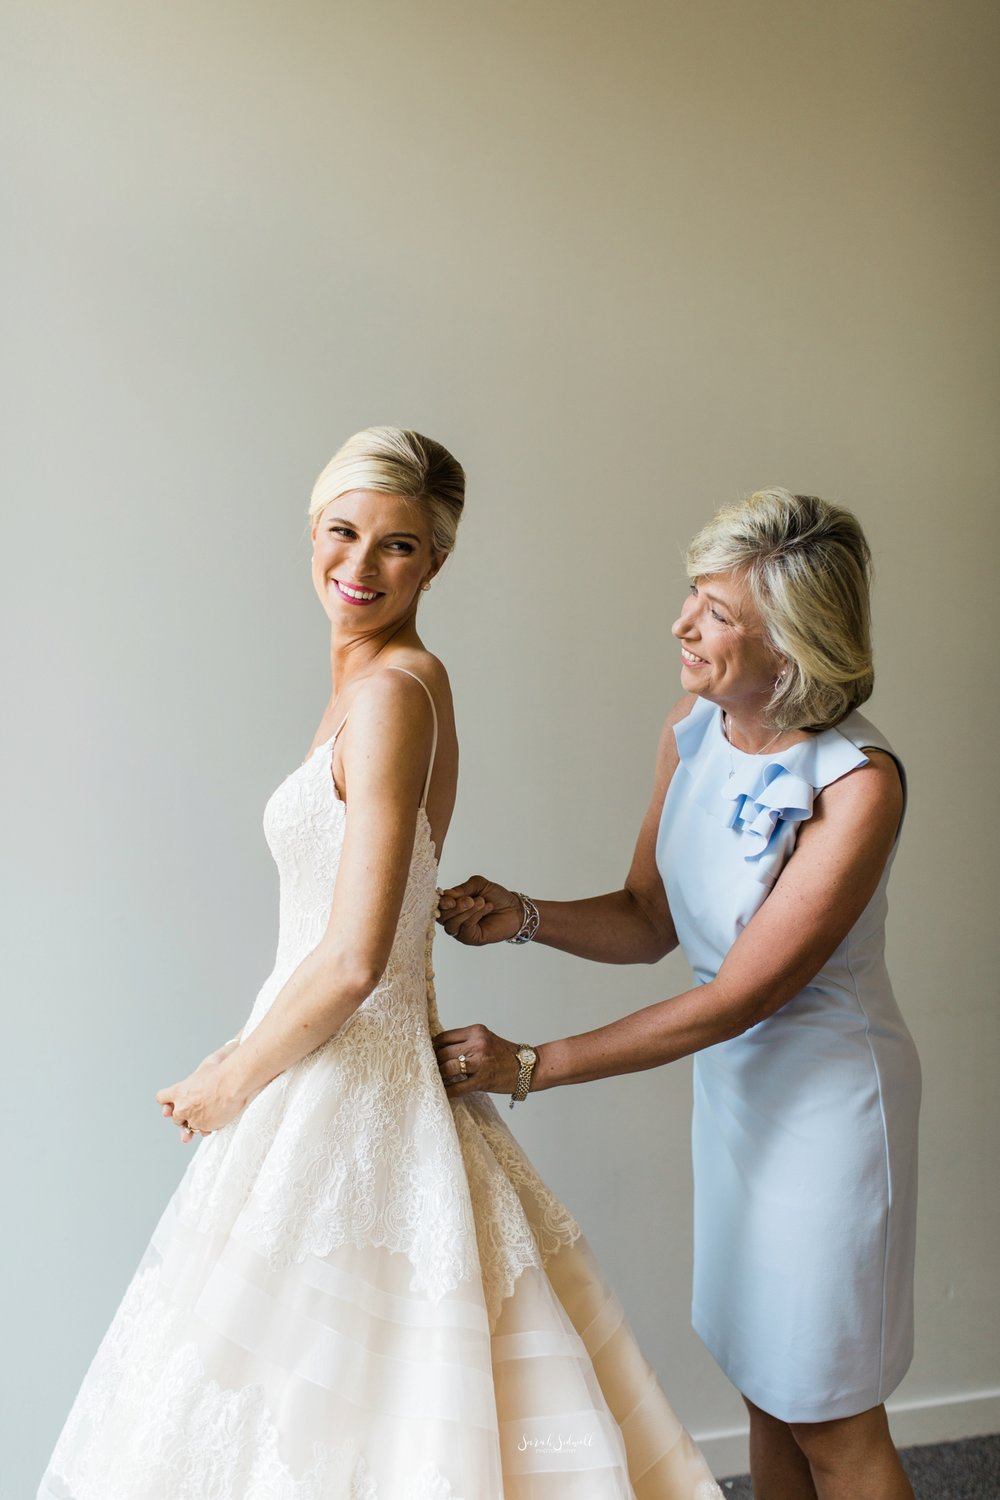 A bride's mother helps her to get into her wedding dress.